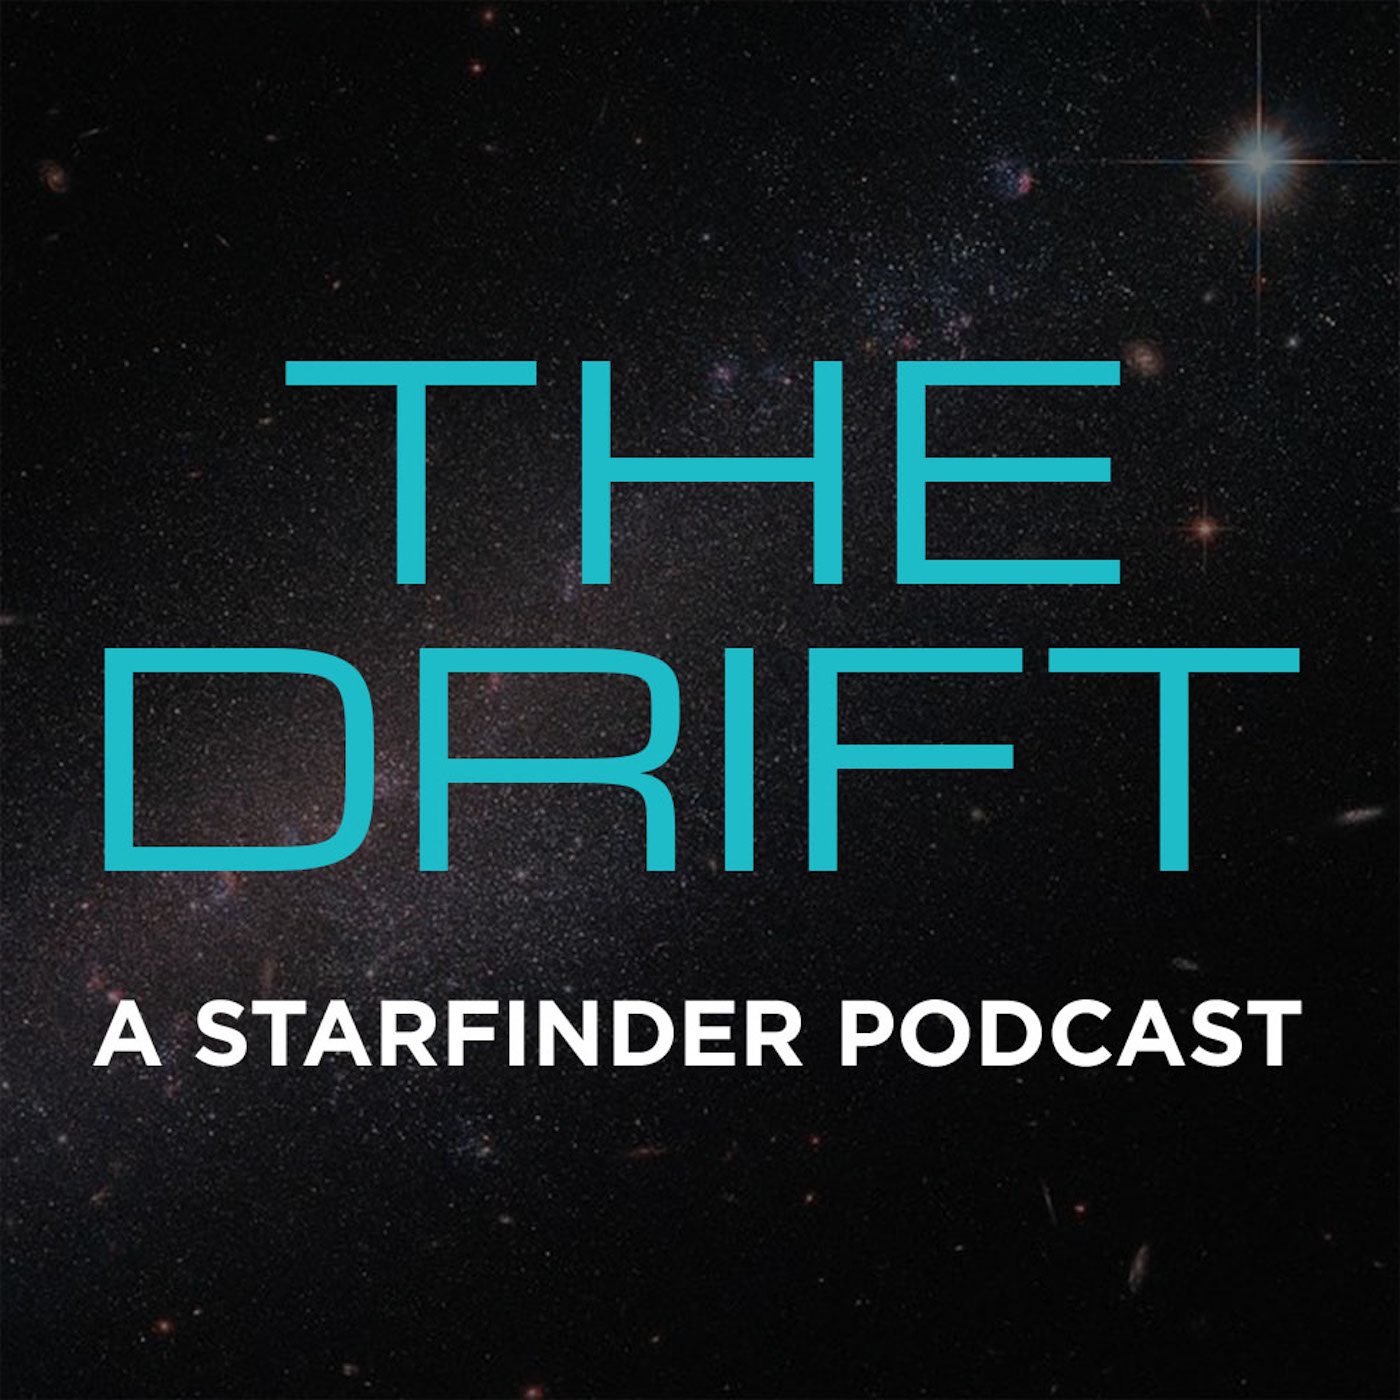 The Drift Episode 0: An Introduction to Starfinder